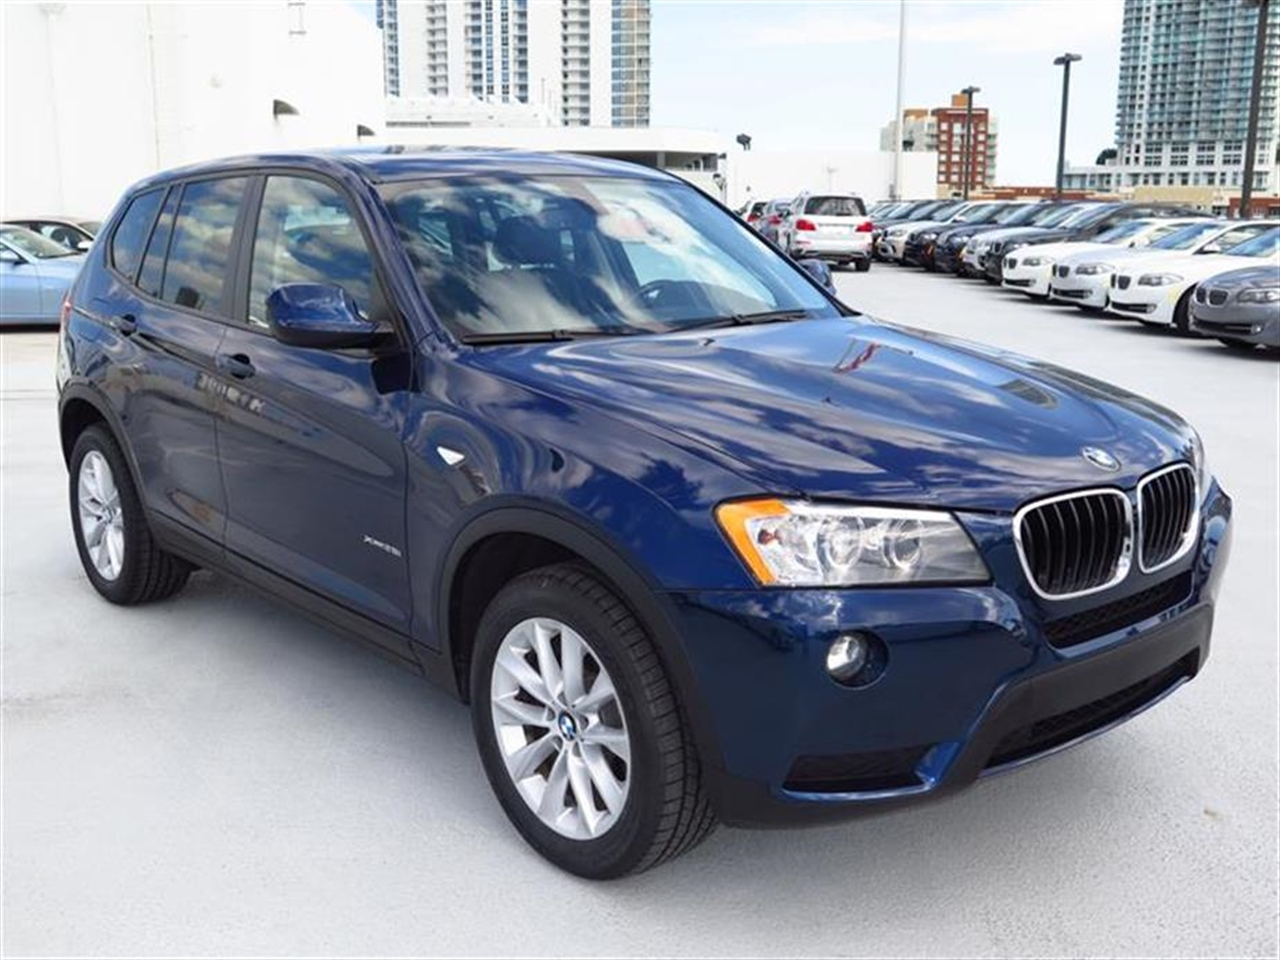 2013 BMW X3 AWD 4dr xDrive28i 26687 miles 3-spoke leather-wrapped multi-function sport steering w